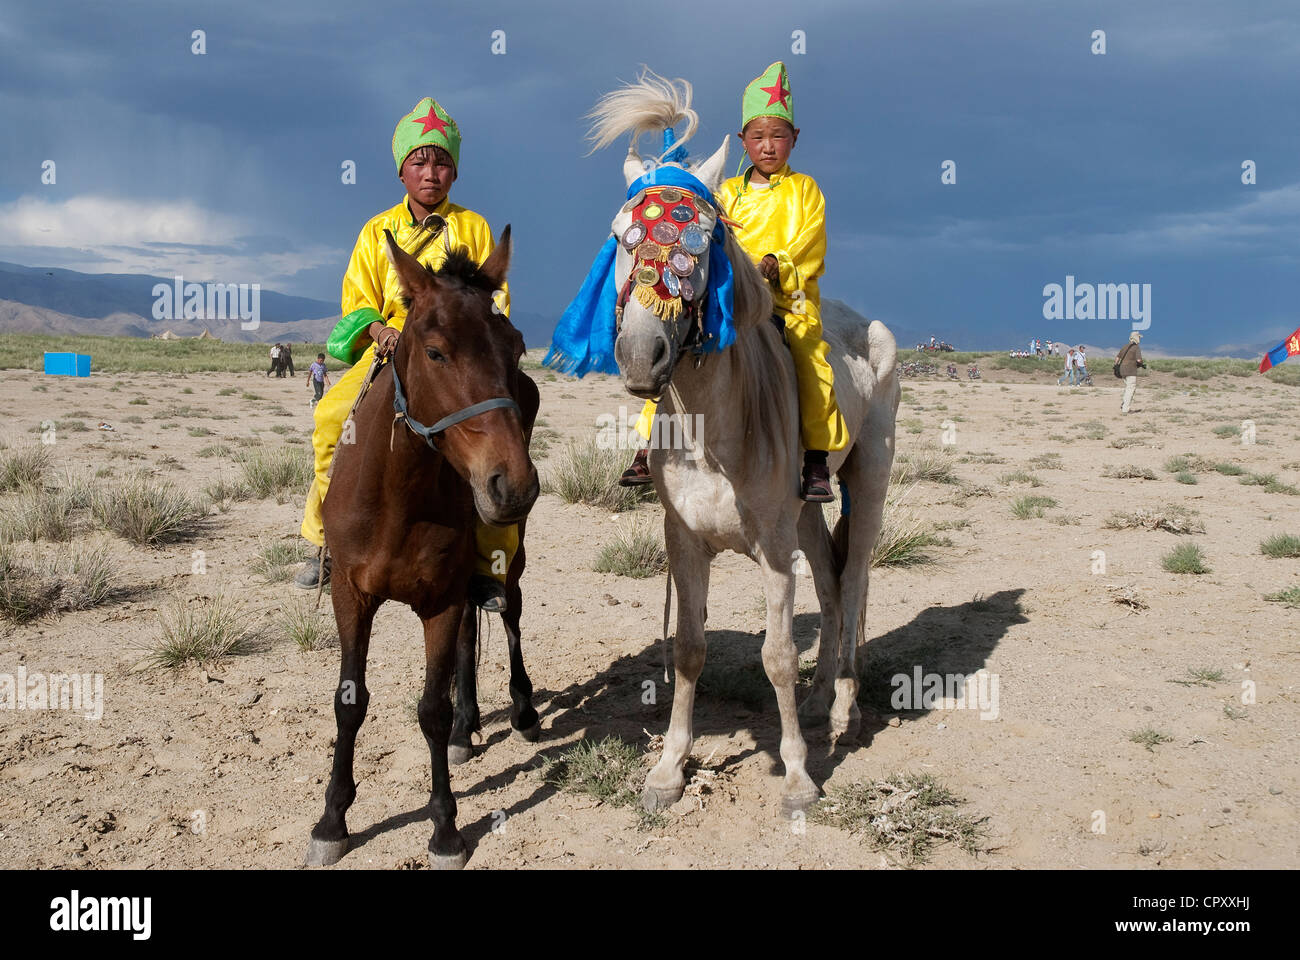 Mongolia, National Festival of Naadam, horse races, young jockey in racing clothes - Stock Image